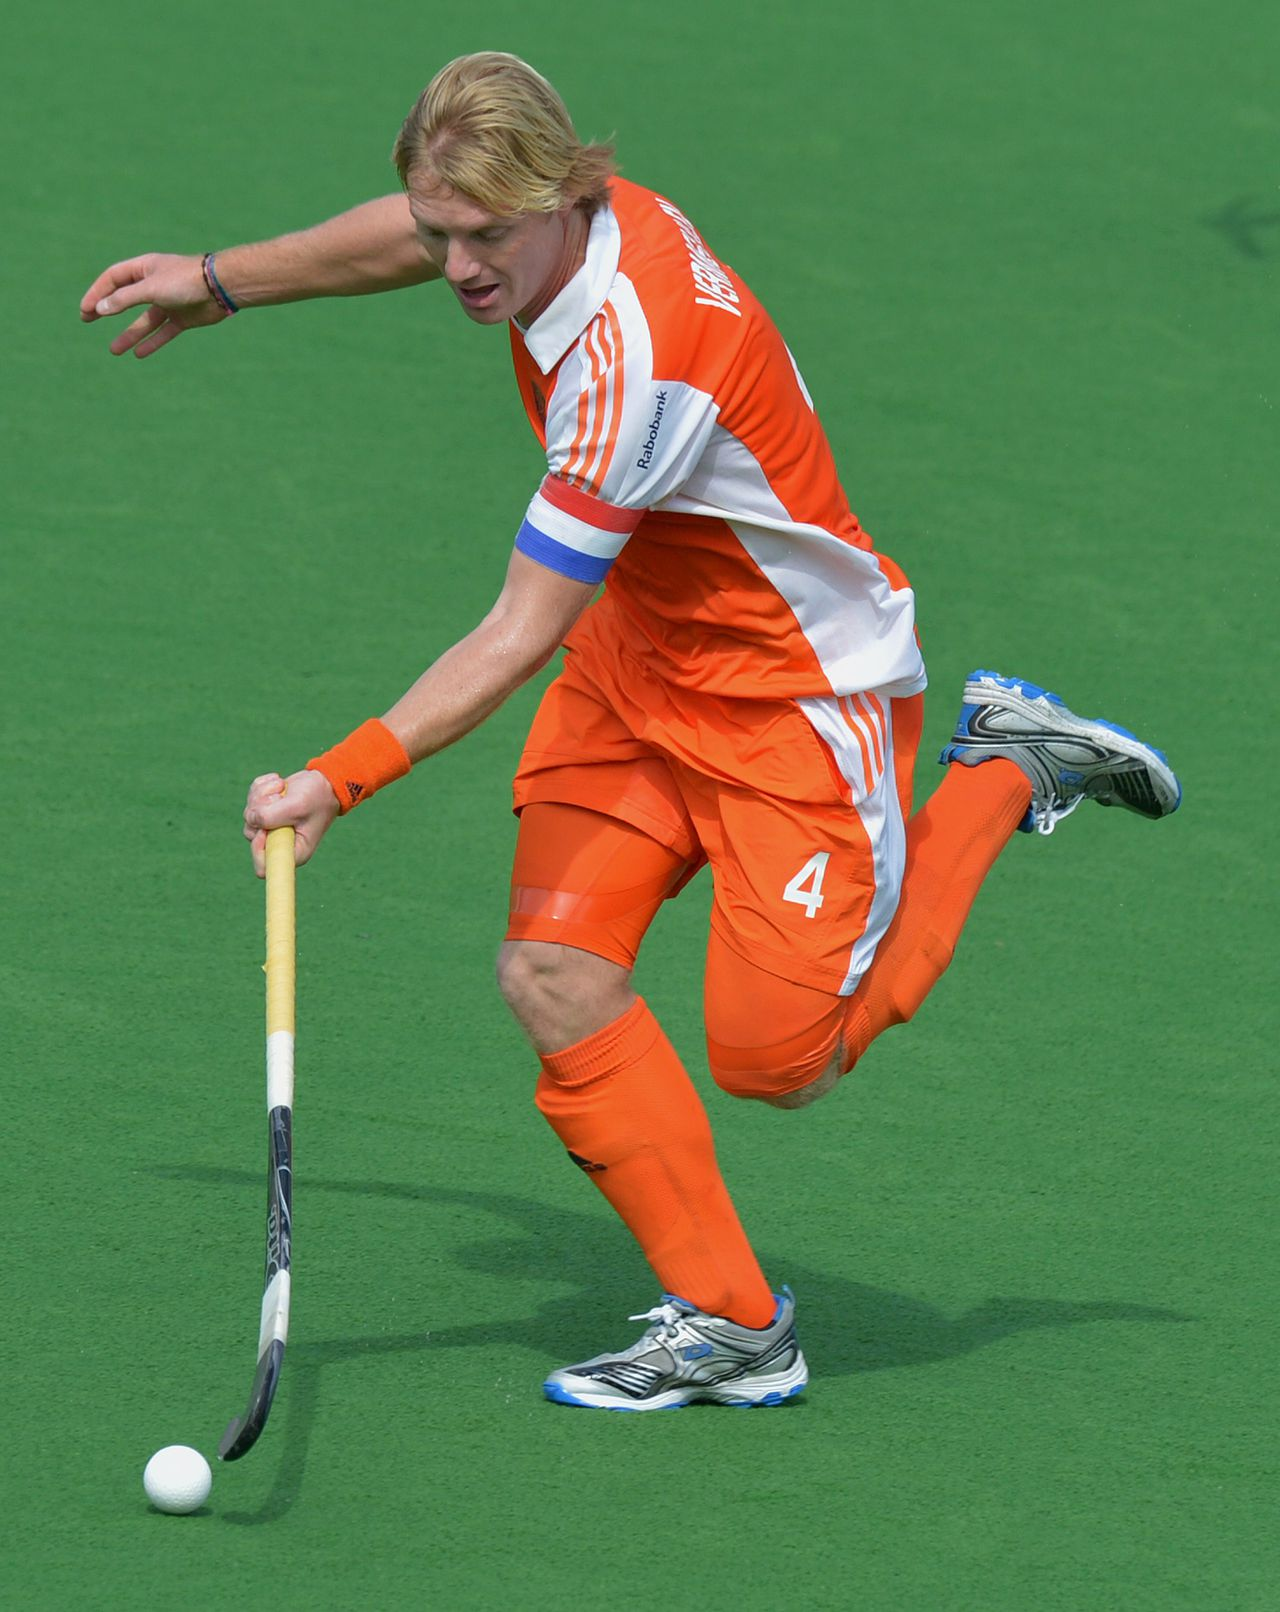 Captain Klaas Vermeulen of The Netherlands runs with the ball during the second quarter final match against New Zealand at the Men's Hockey Champions Trophy in Melbourne on December 6, 2012. The Netherlands won the match 2-0. AFP PHOTO/Paul CROCK IMAGE STRICTLY RESTRICTED TO EDITORIAL USE - STRICTLY NO COMMERCIAL USE